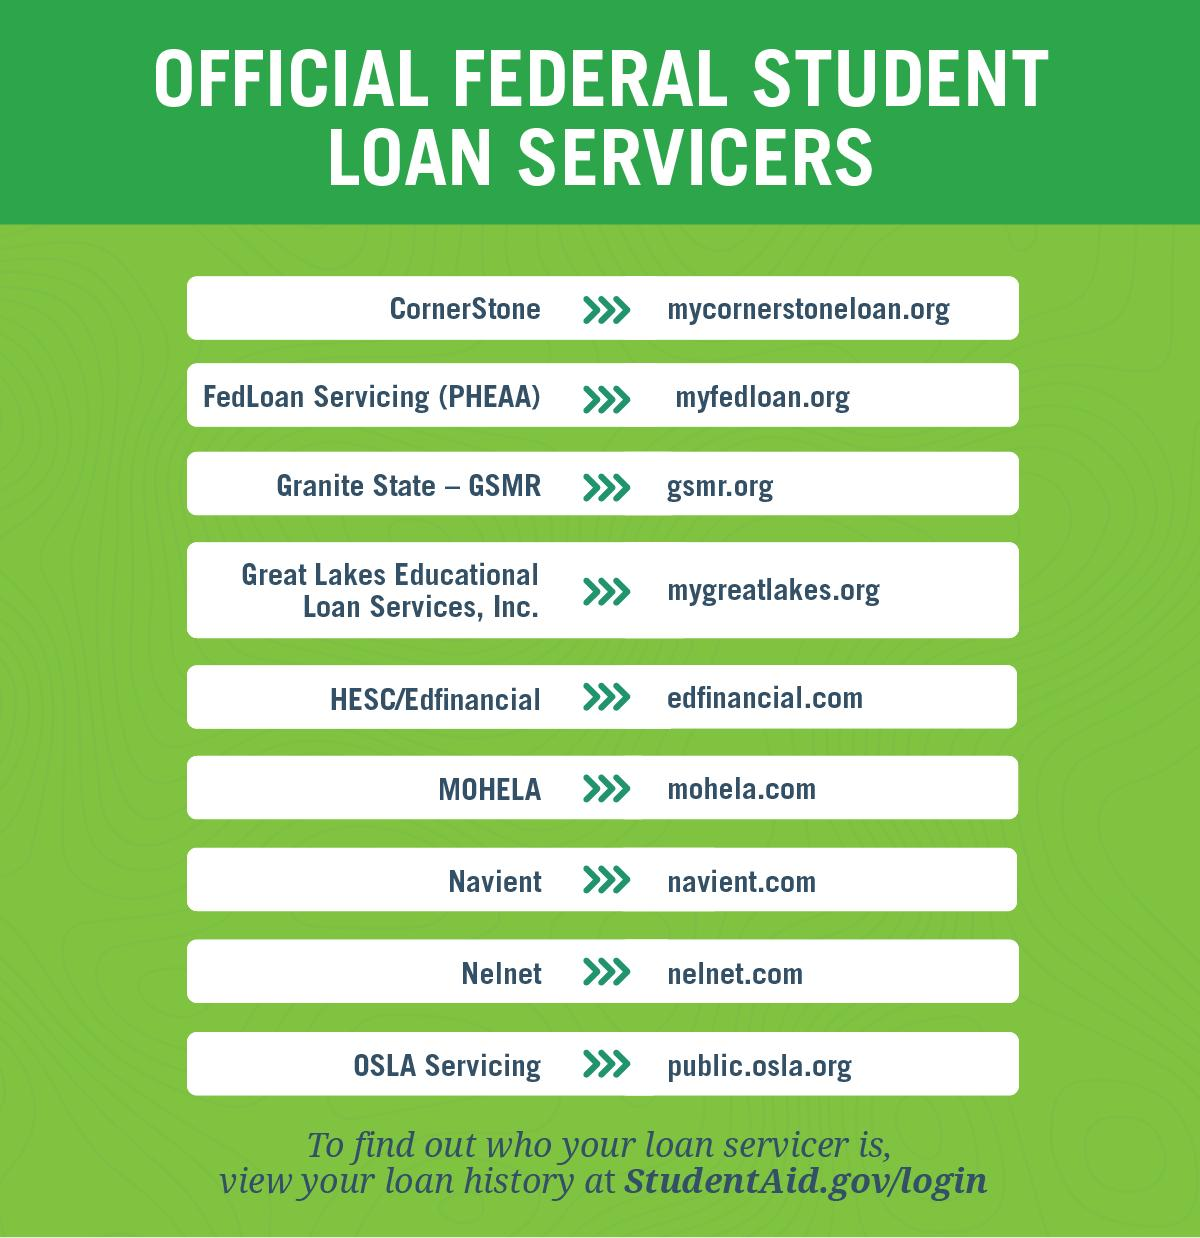 Federal Student Loan Servicers